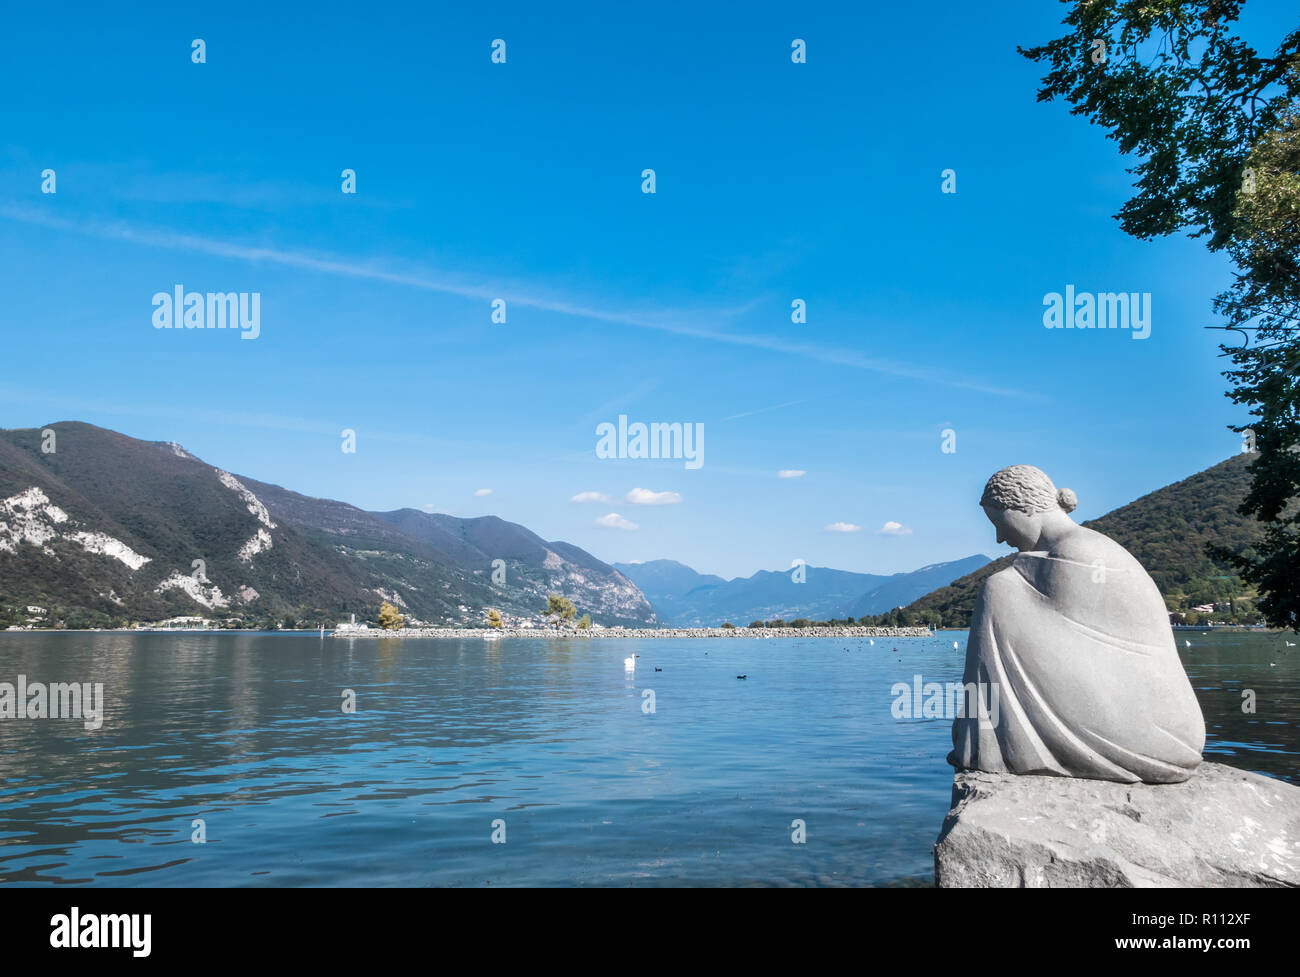 Sculpture of a young woman sitting on a rock, on the shore of Lake Iseo. In the background, the lake and the mountains. - Stock Image